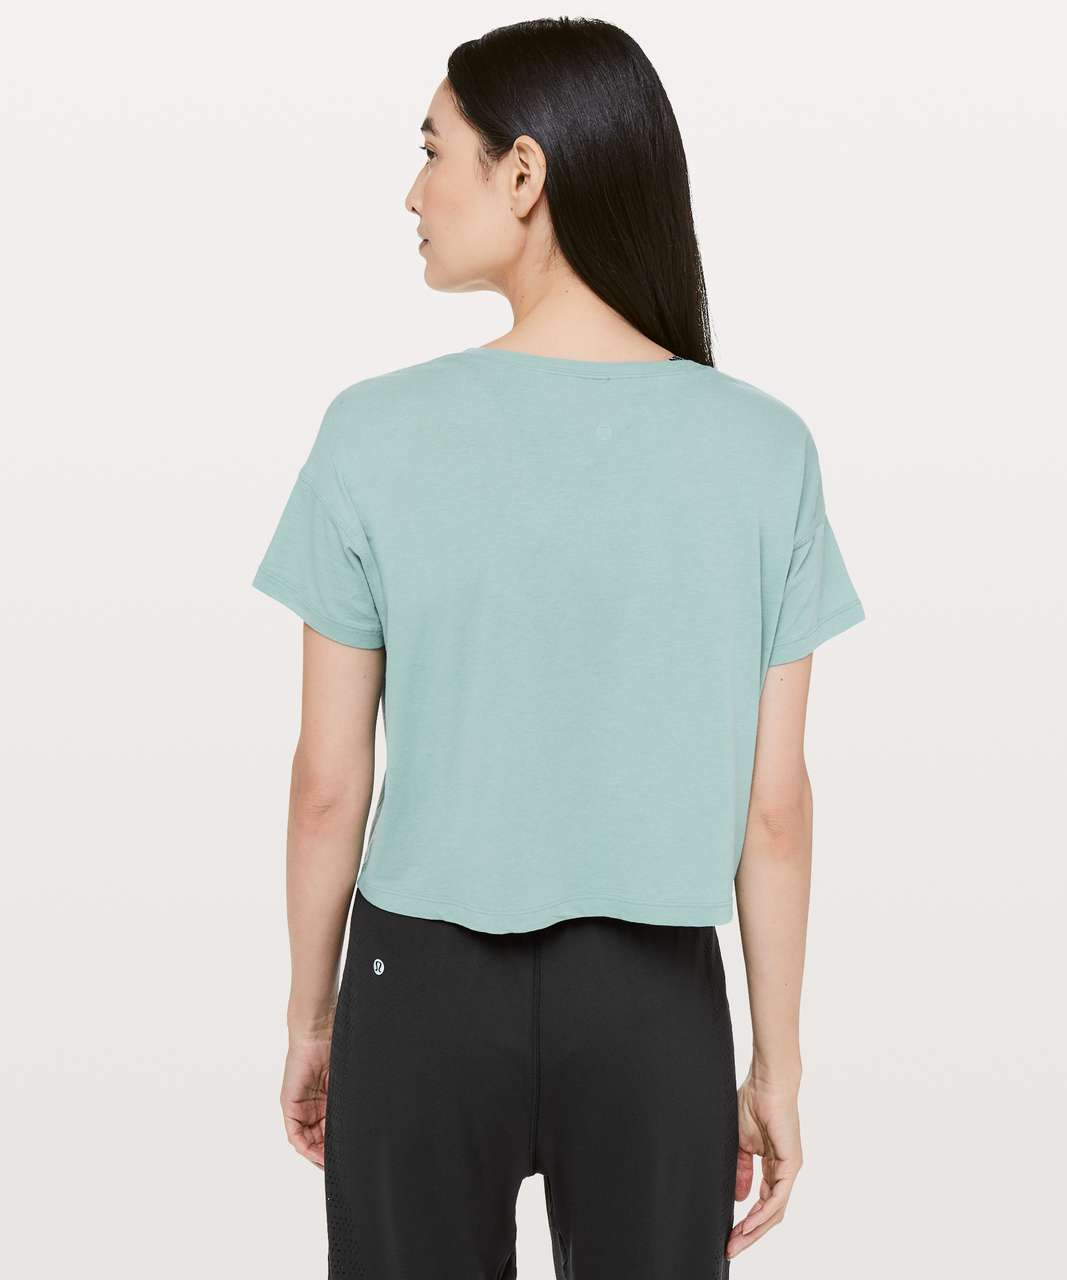 Lululemon Cates Tee *Light - Rip Tide